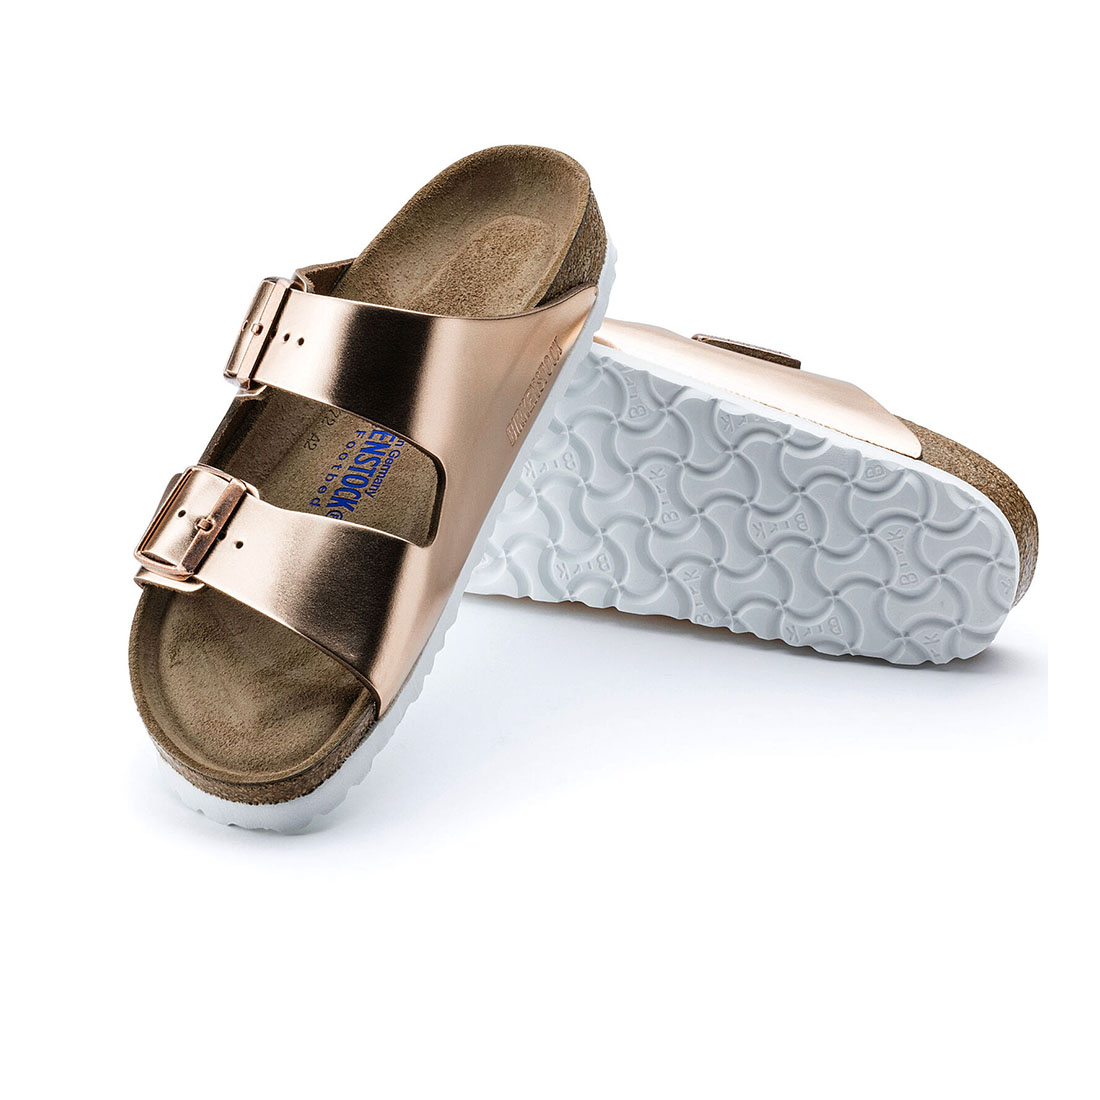 Birkenstock Arizona Soft Foot Bed In Metallic Copper Leather 63469